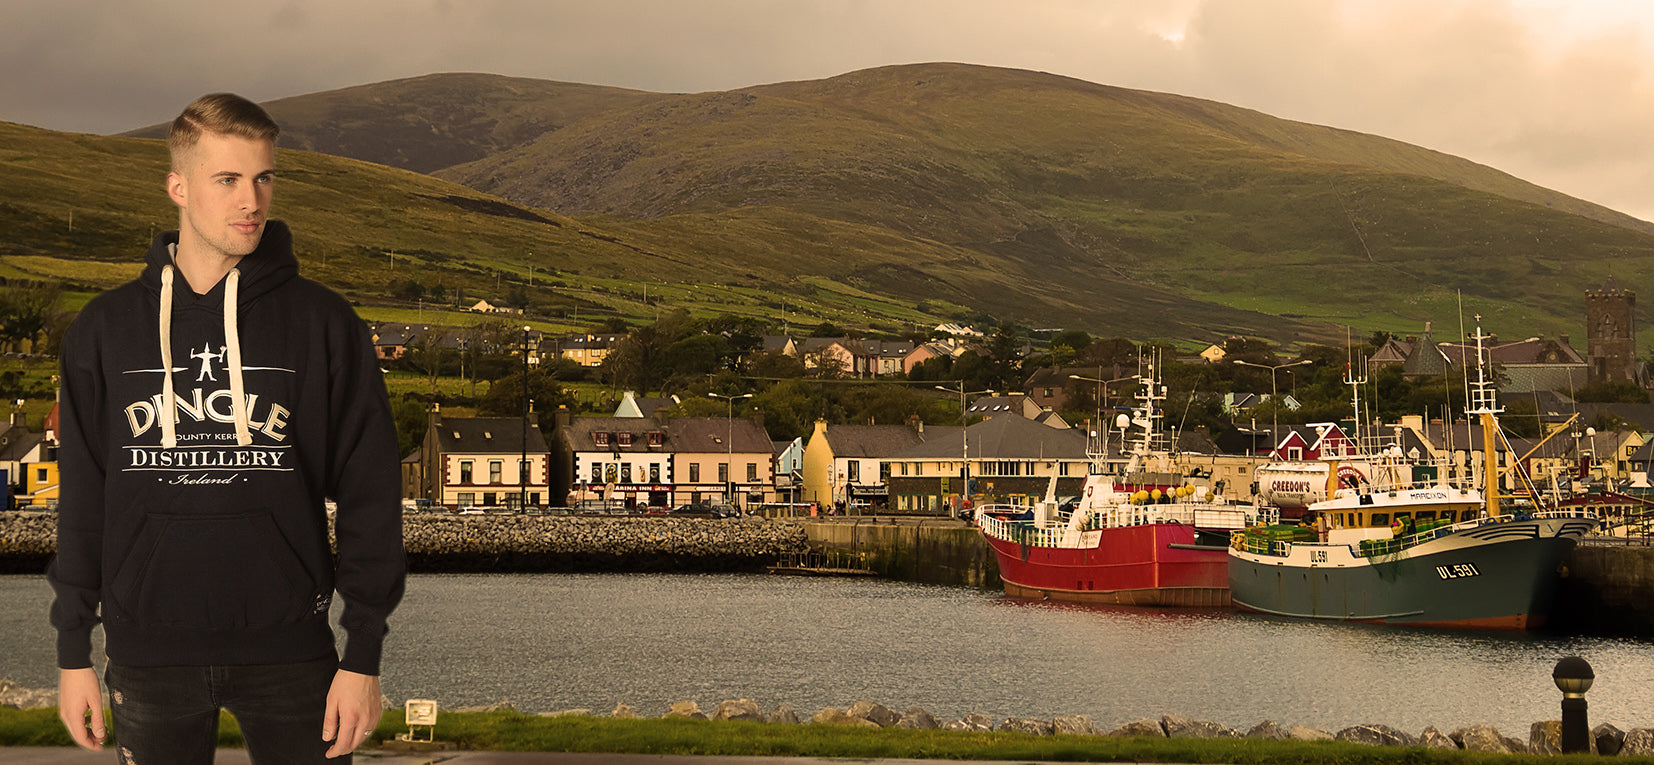 Dingle Distillery Hoody with Dingle town and Harbour in the background